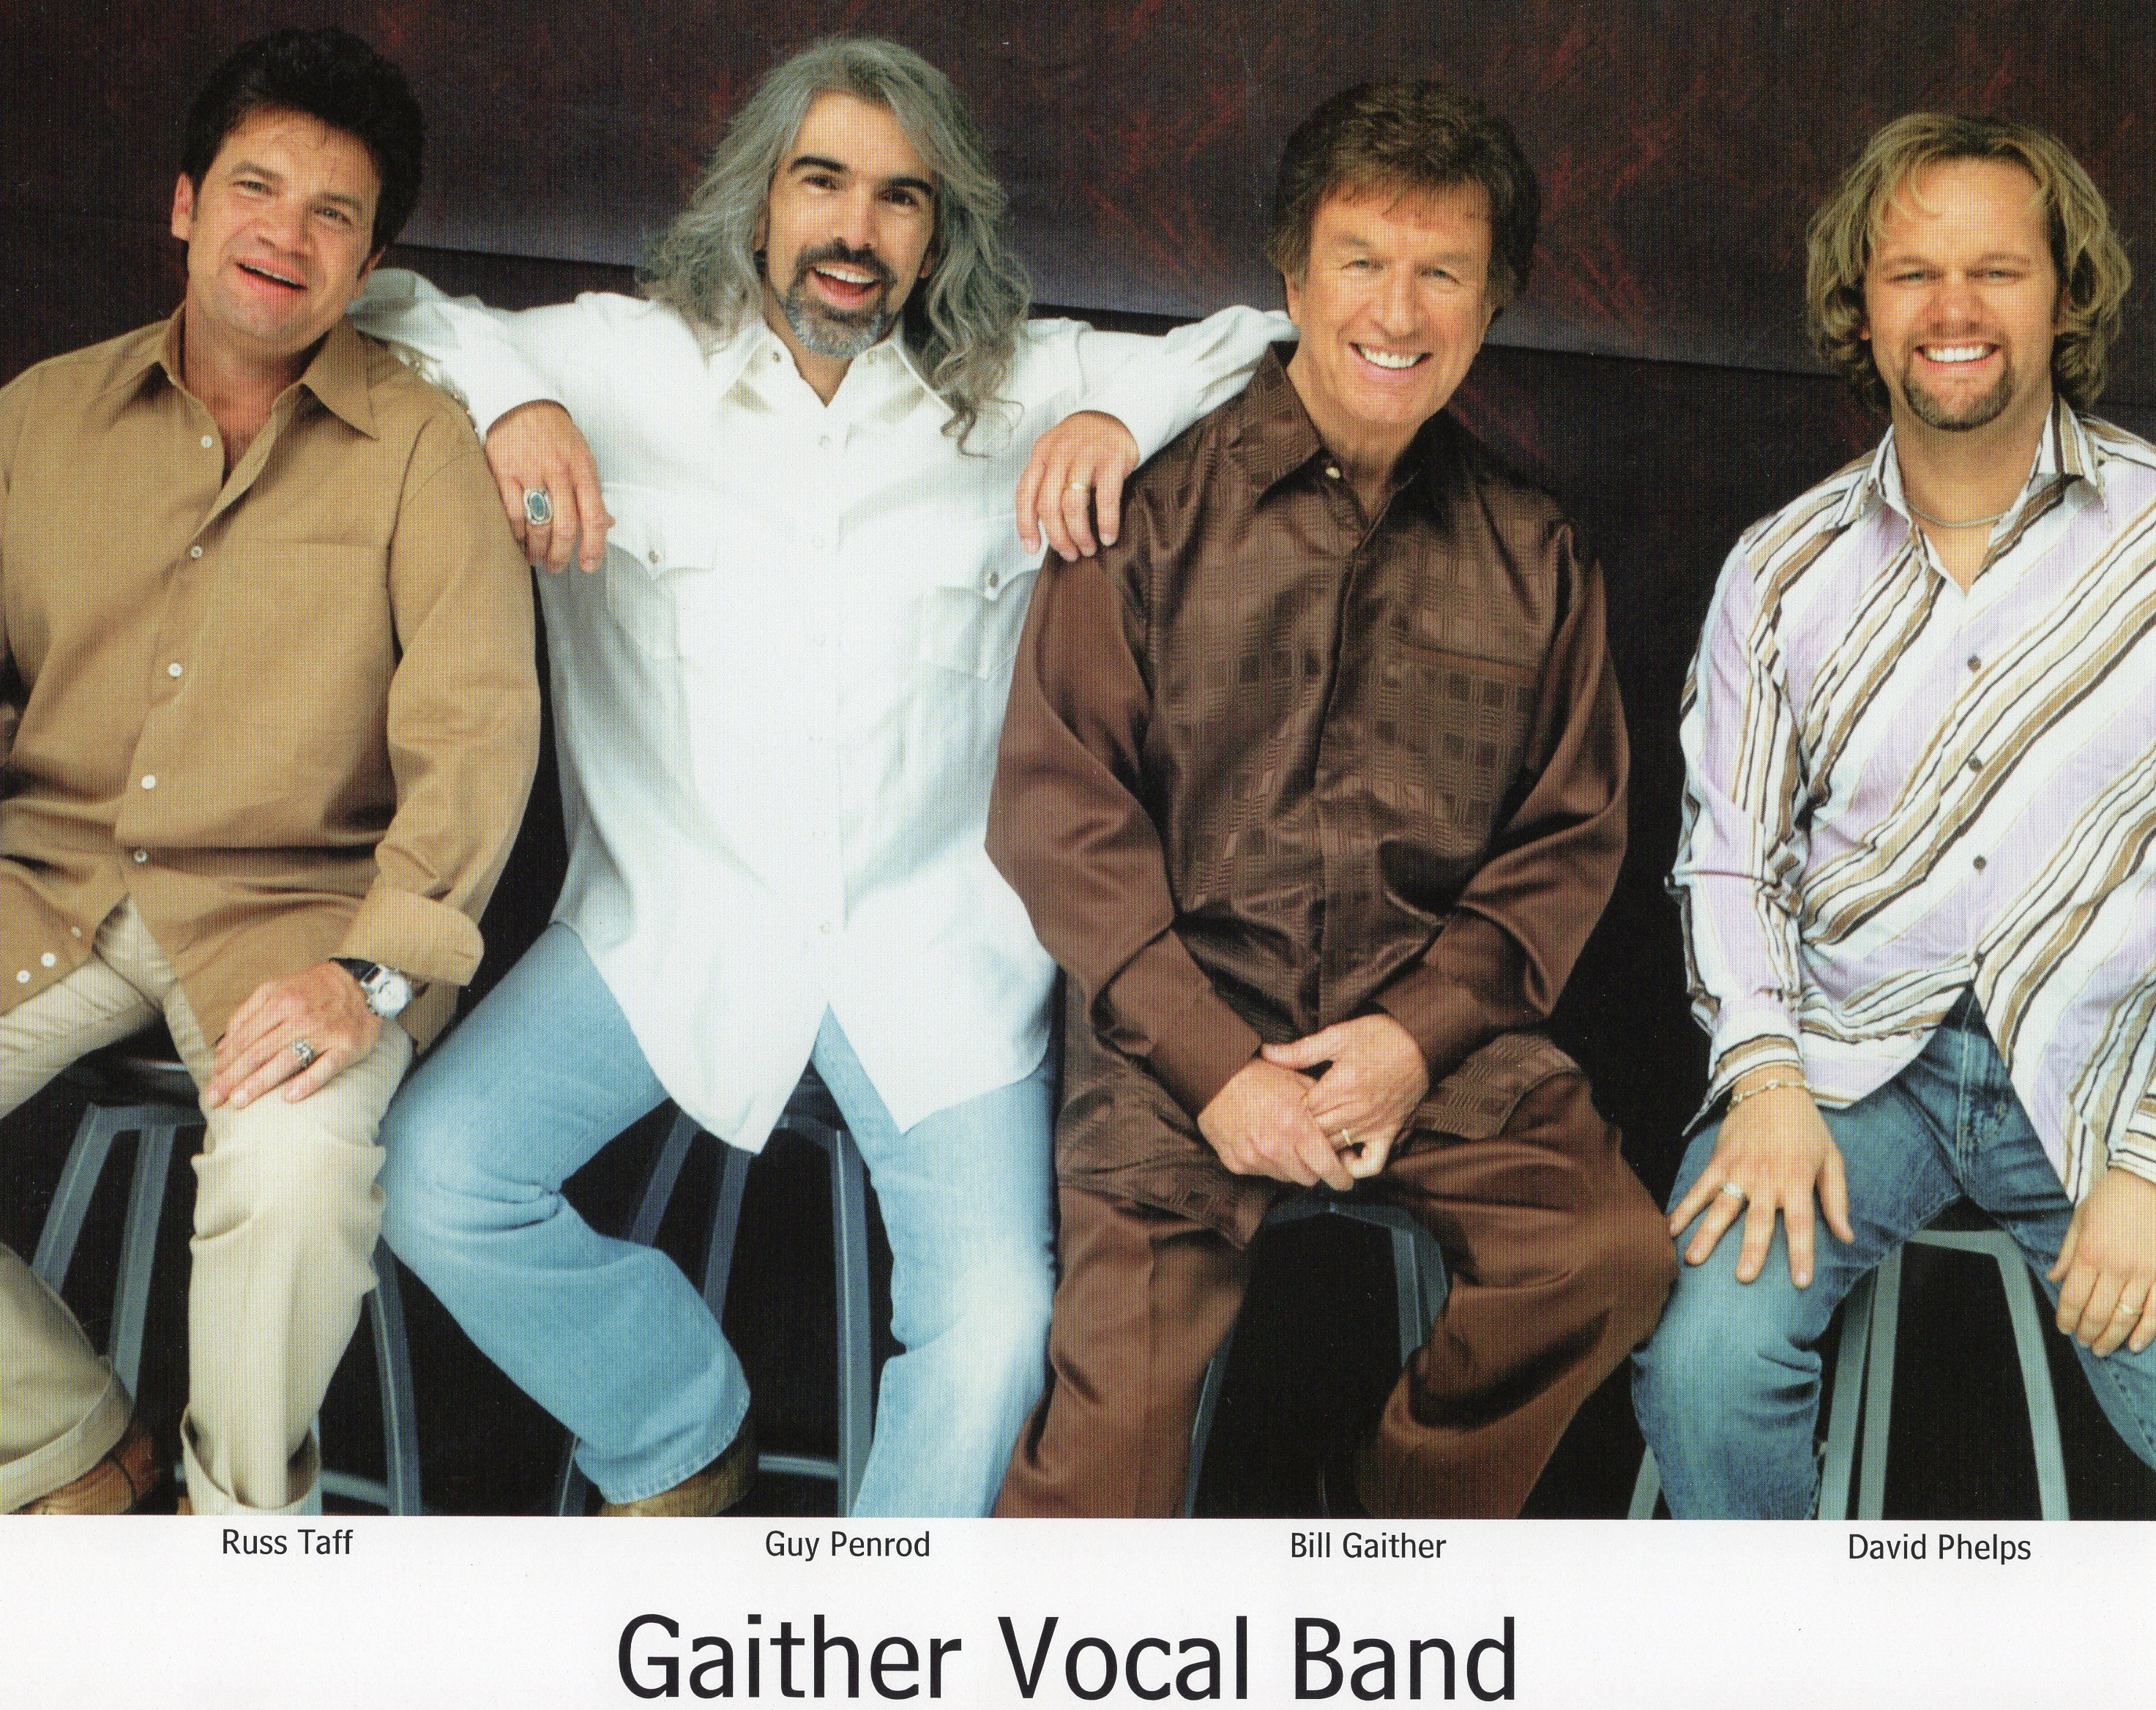 Russ Taff with the Gaither Vocal Band